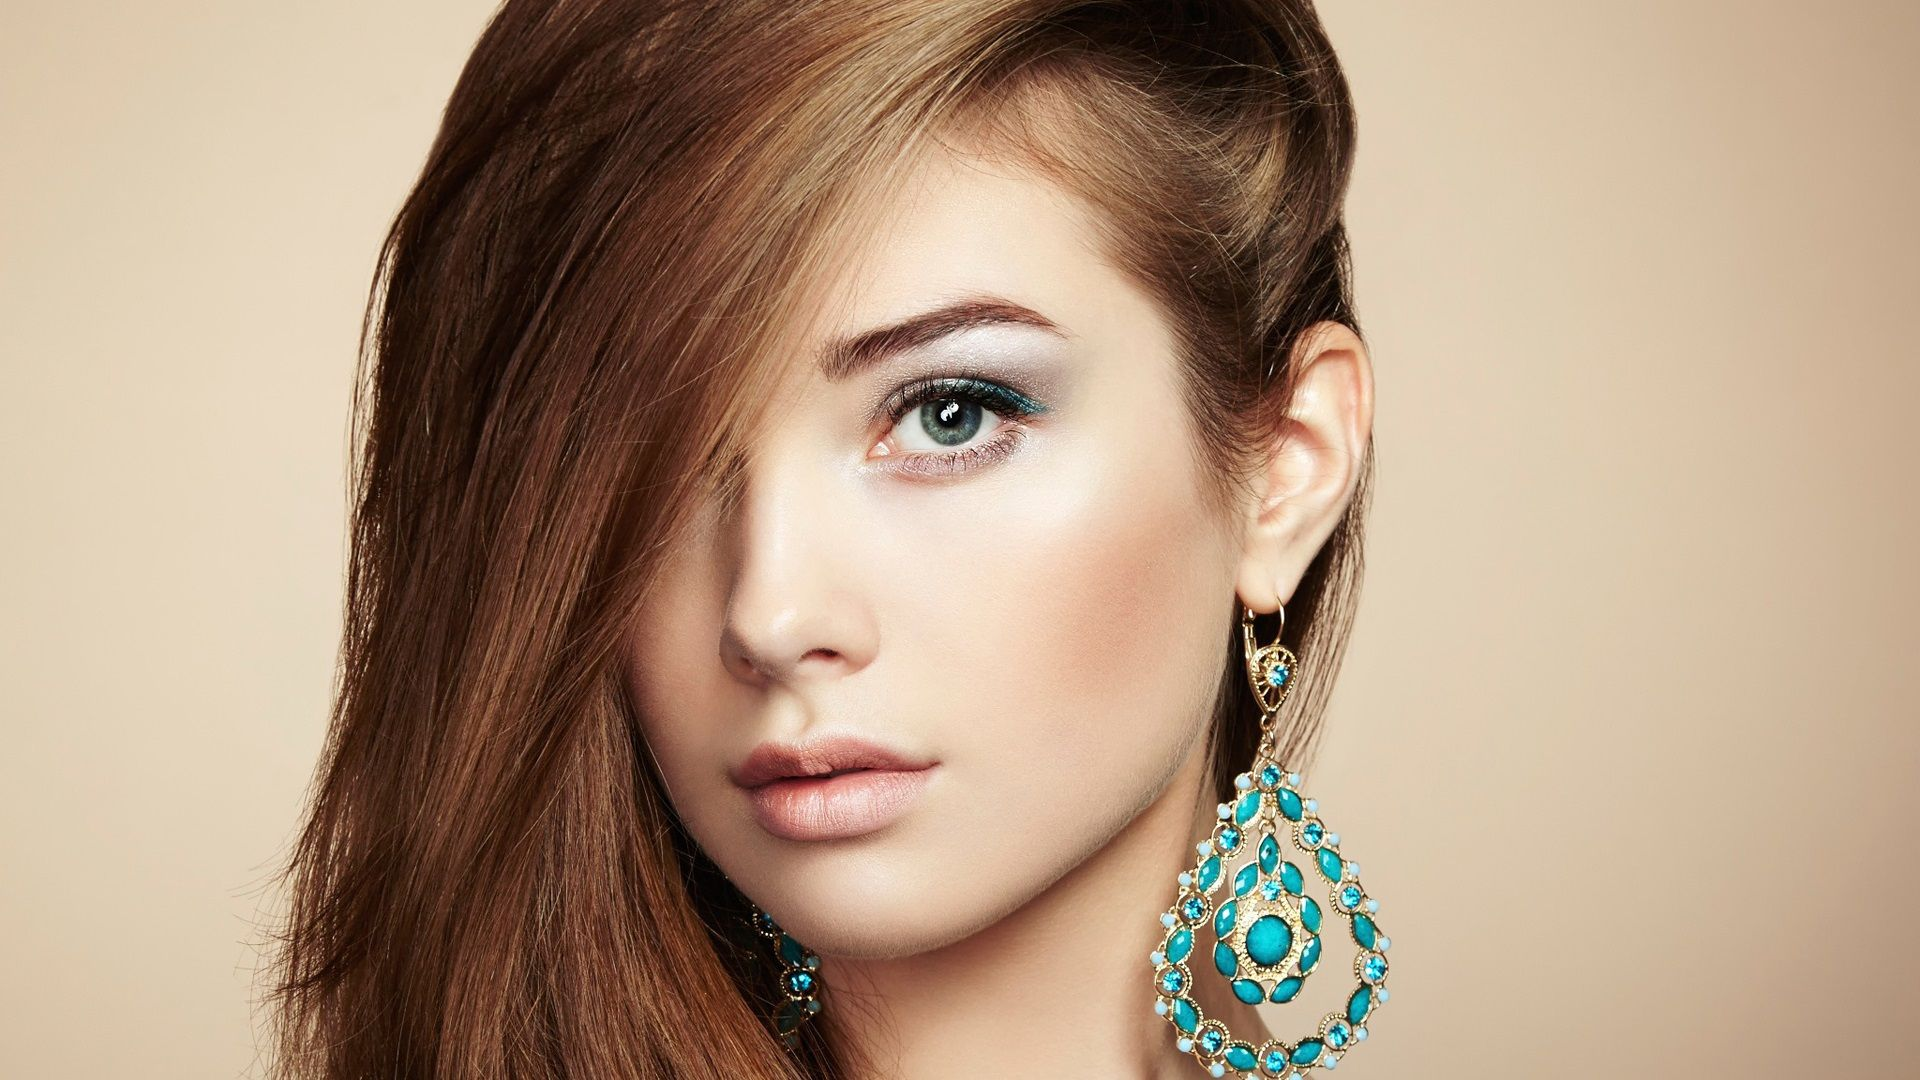 Girl jewelry hd wallpapers get free top quality girl jewelry hd girl jewelry hd wallpapers get free top quality girl jewelry hd wallpapers for your desktop pc background ios or android mobile phones at voltagebd Gallery